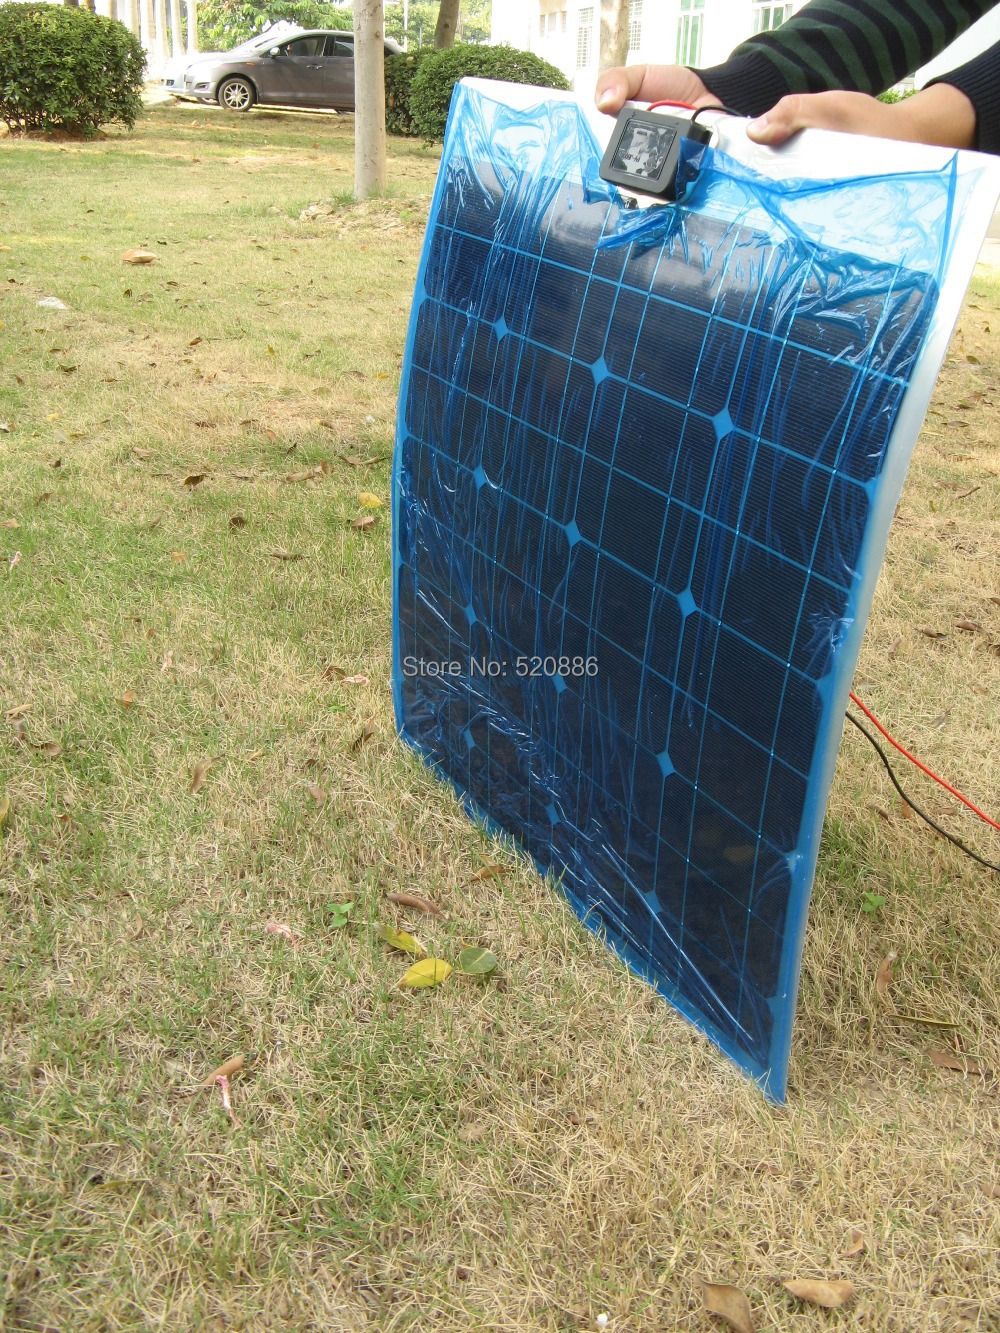 USA stock, no tax, 2pcs 40W mono semi-flexible pv solar panel 12v, for boat RV,  home solar system, car battery, free shipping